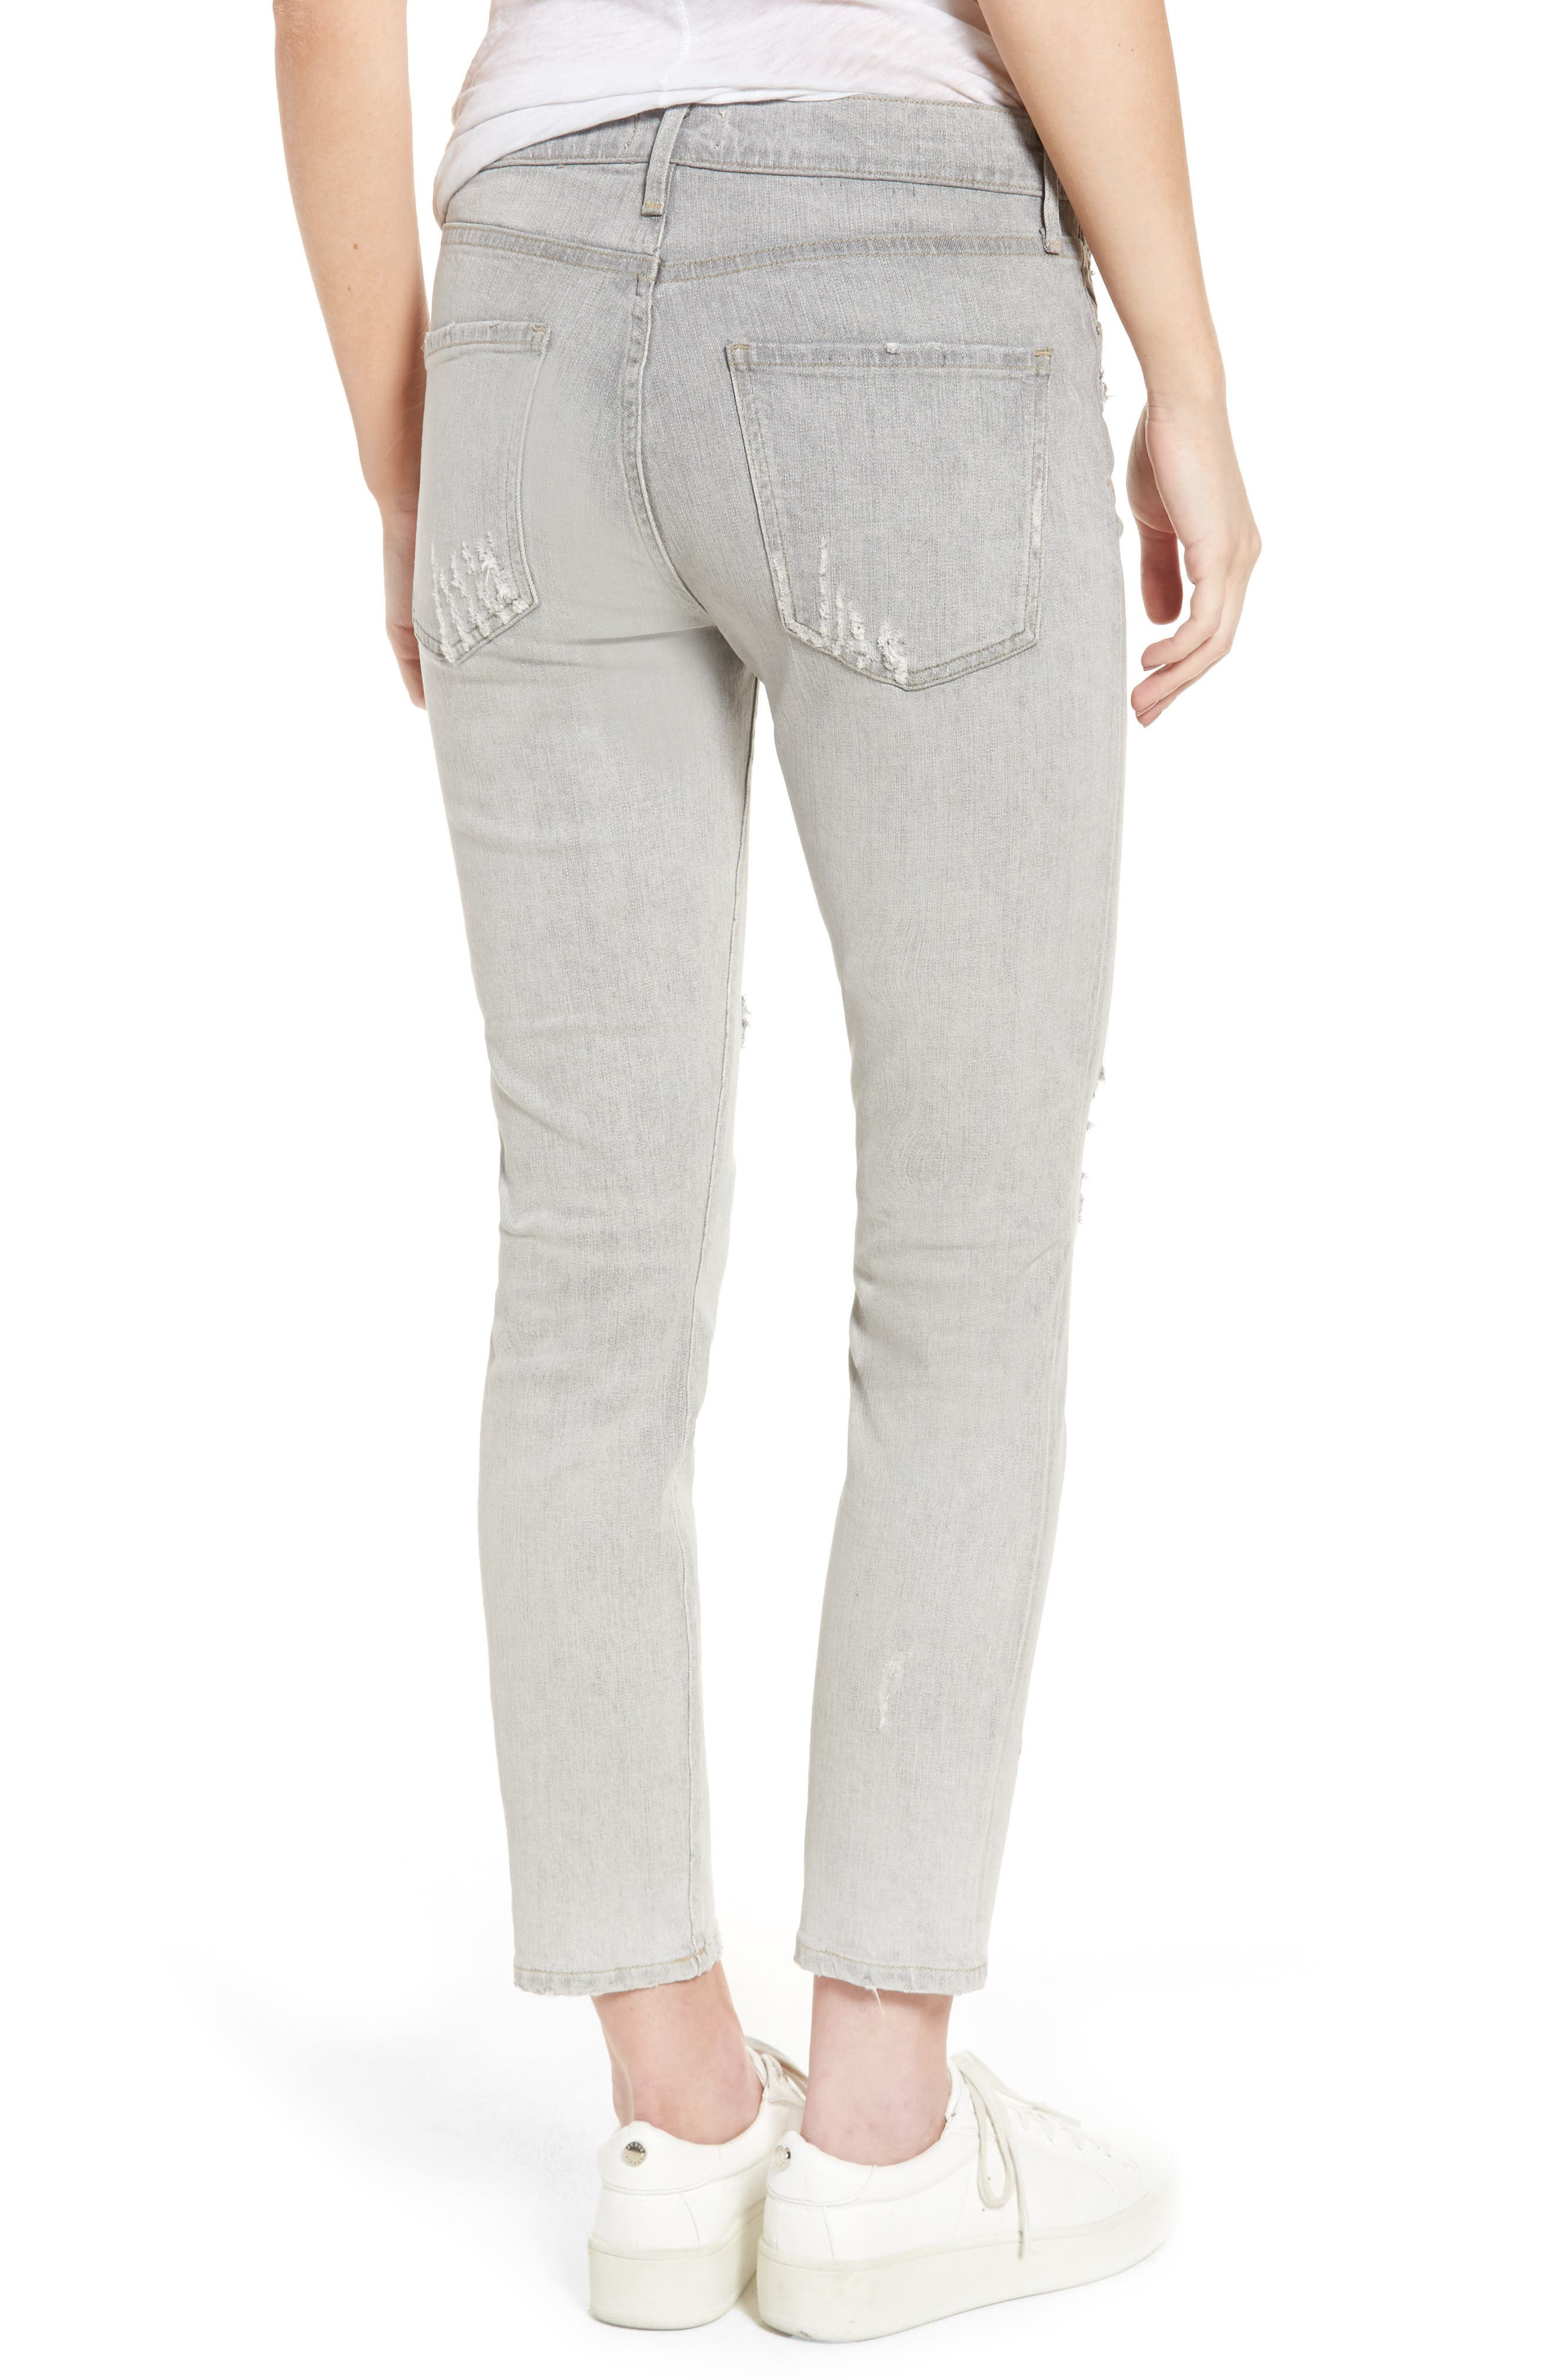 Sophie High Waist Skinny Jeans,                             Alternate thumbnail 2, color,                             059